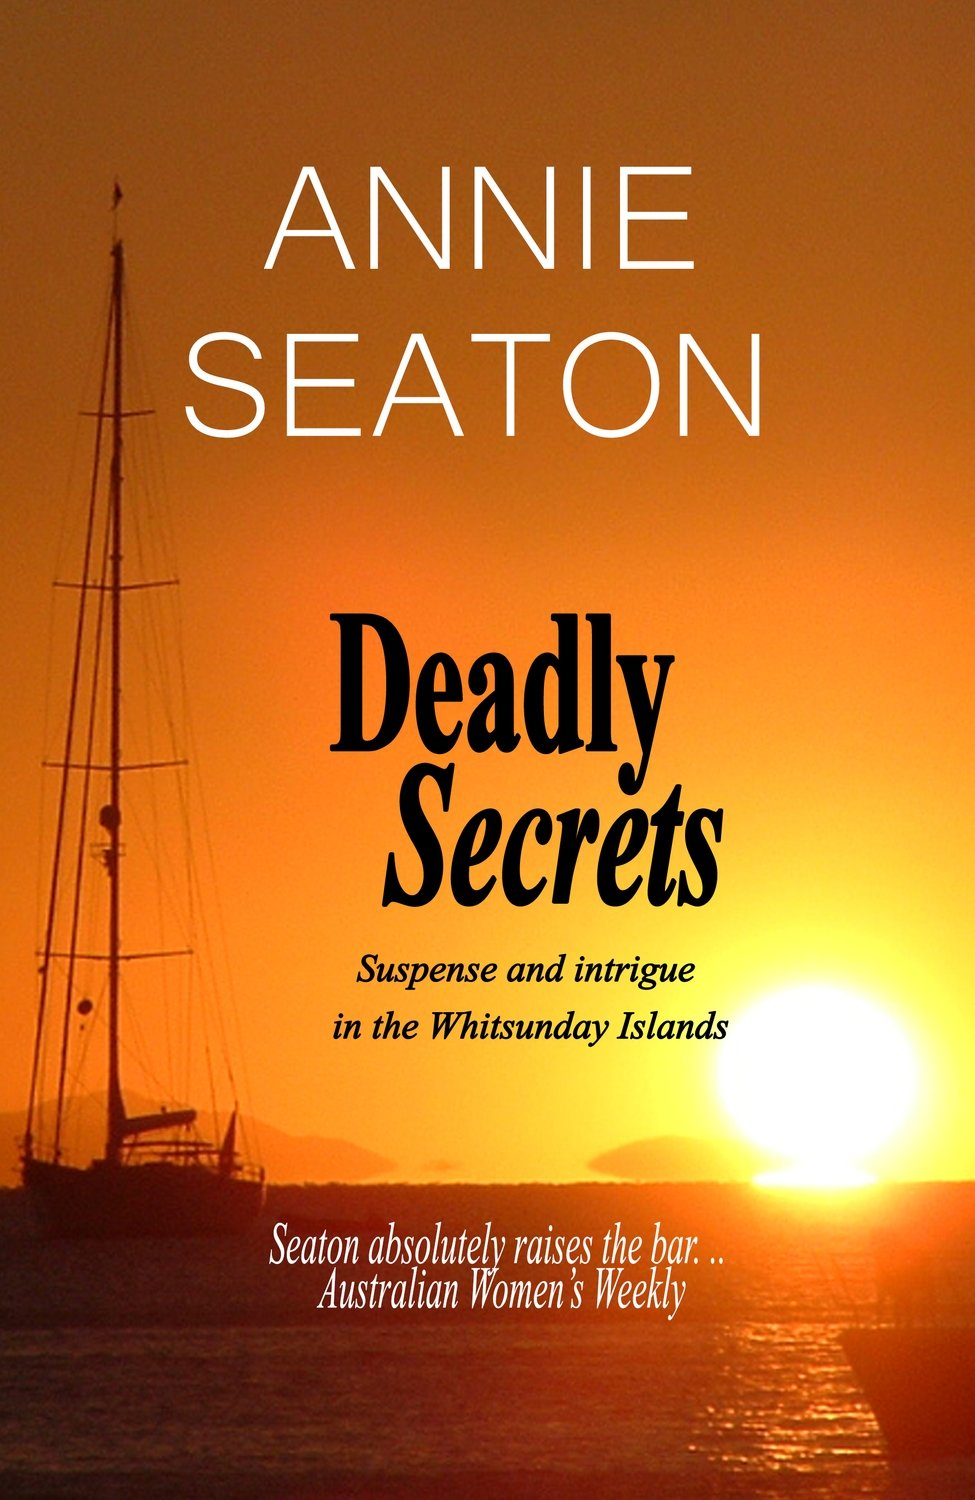 Deadly Secrets-Print